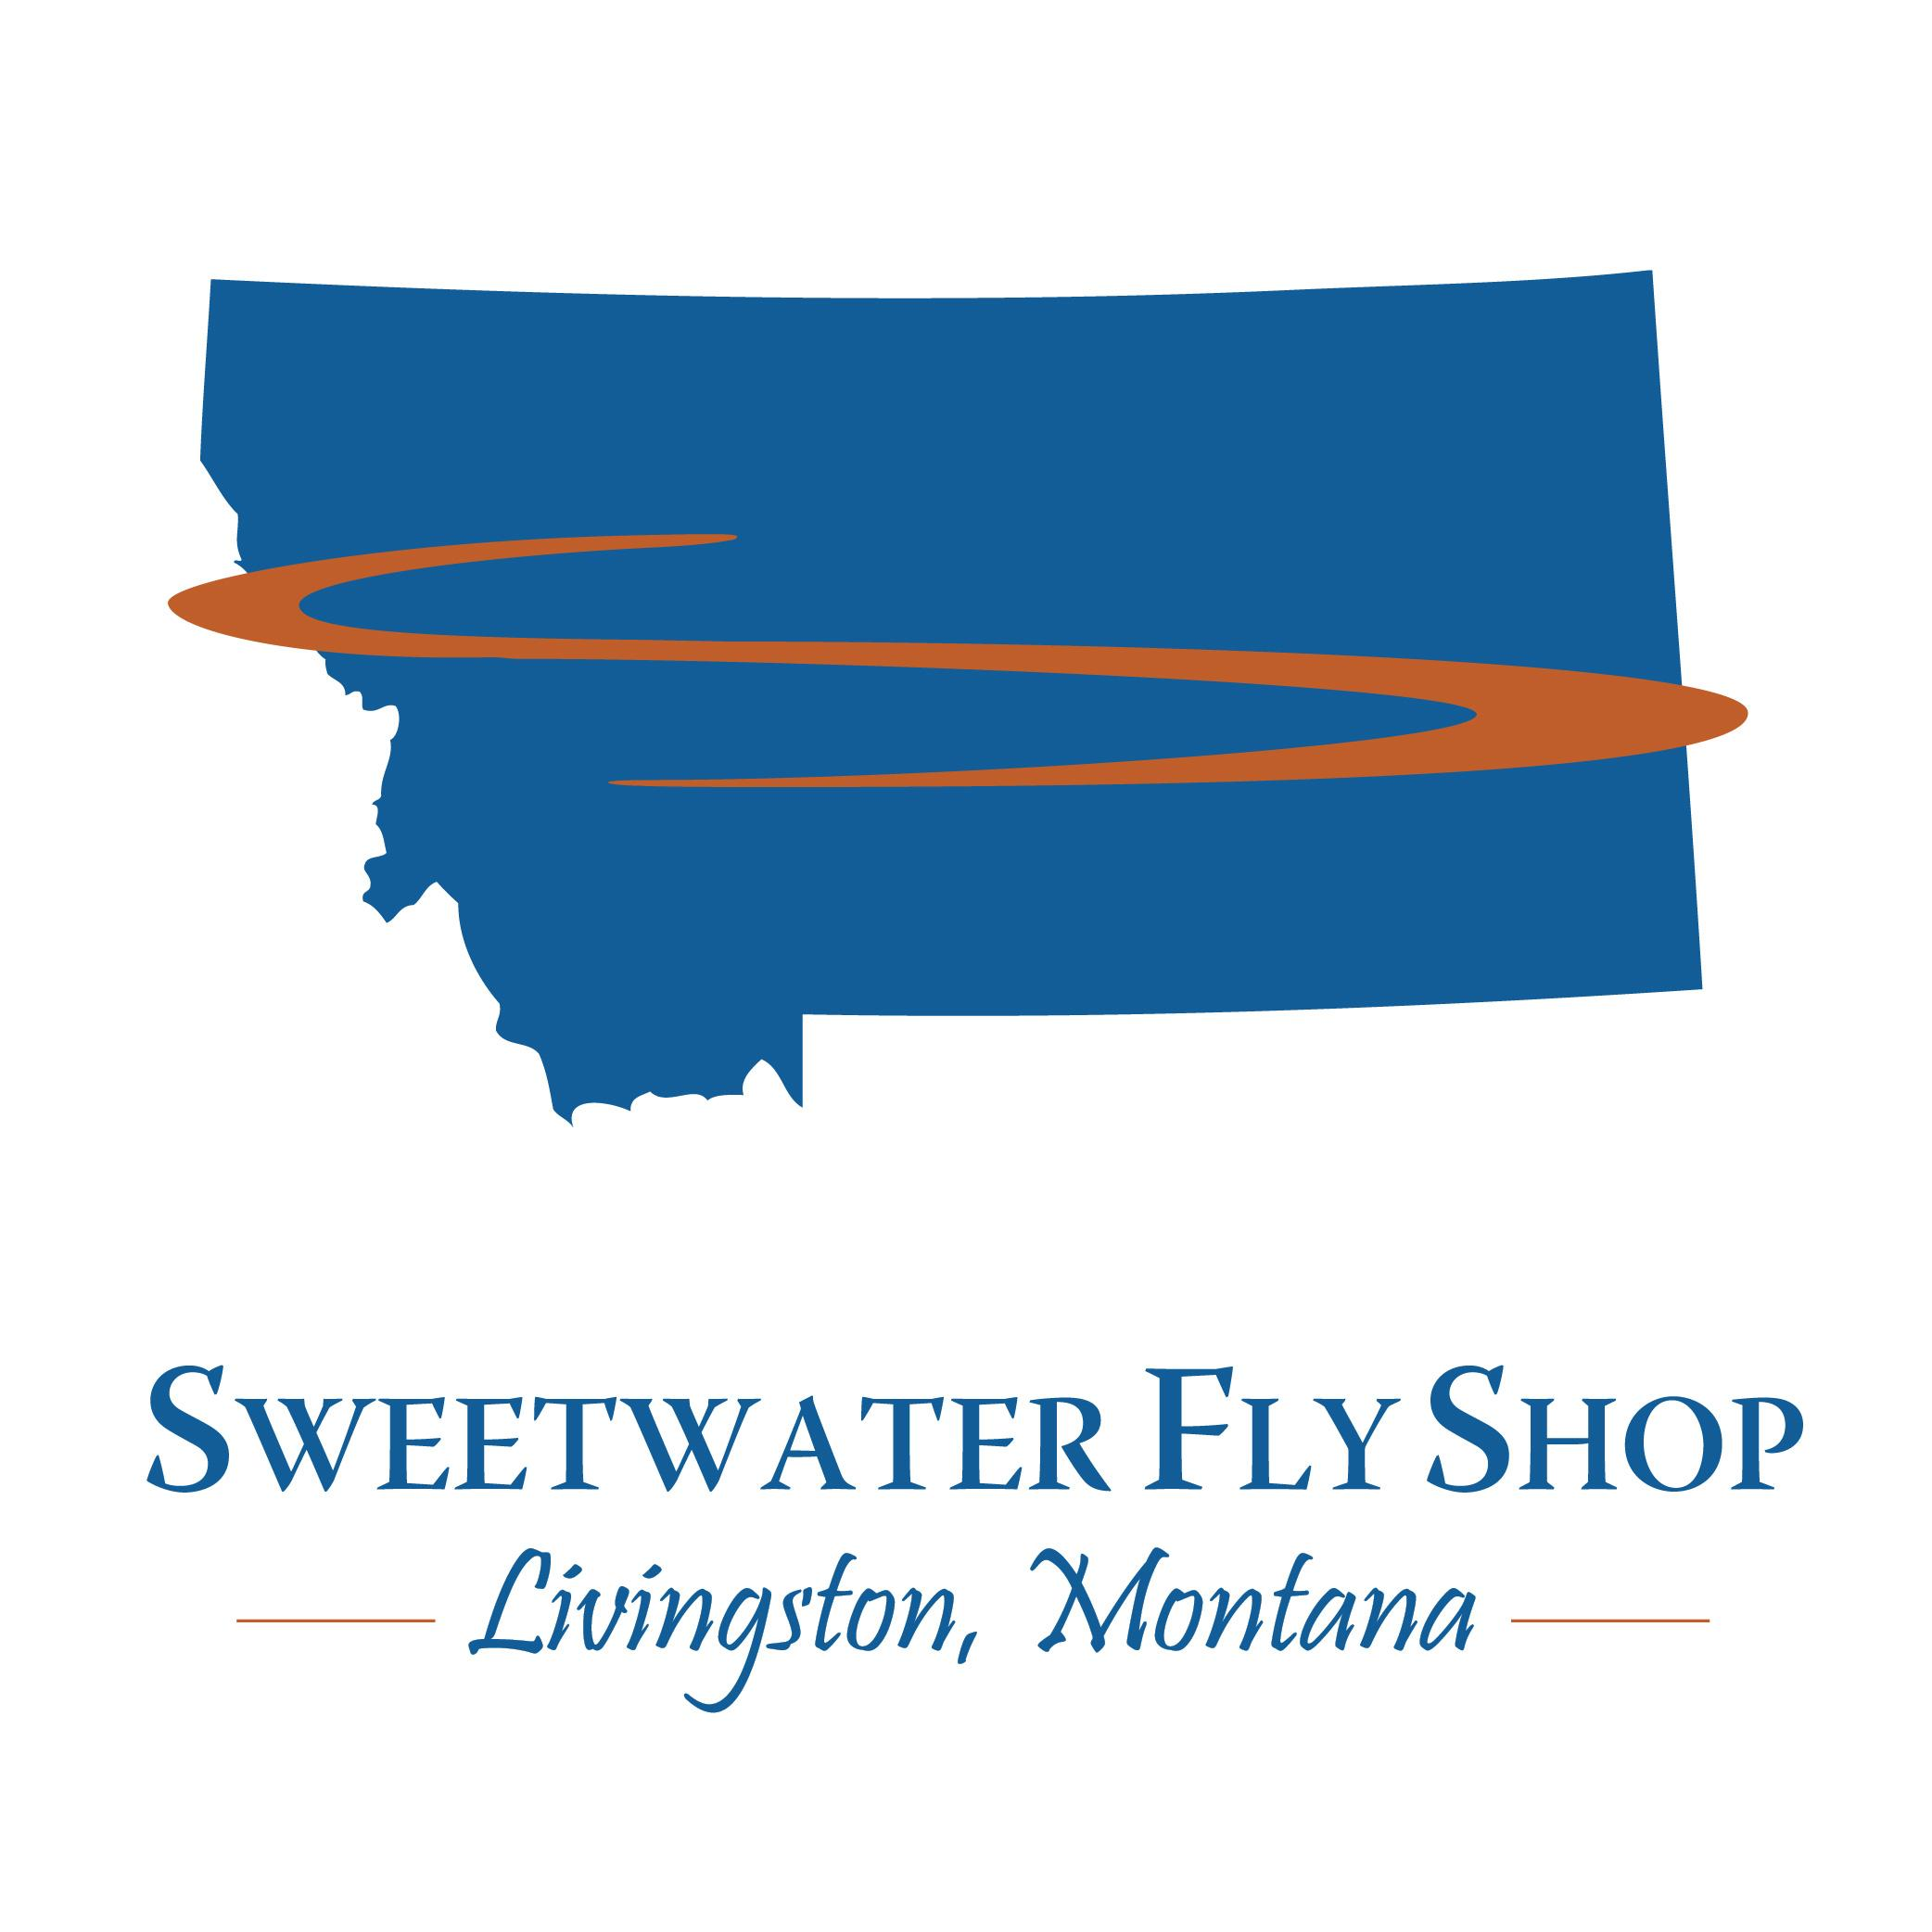 Sweetwater Fly Shop logo